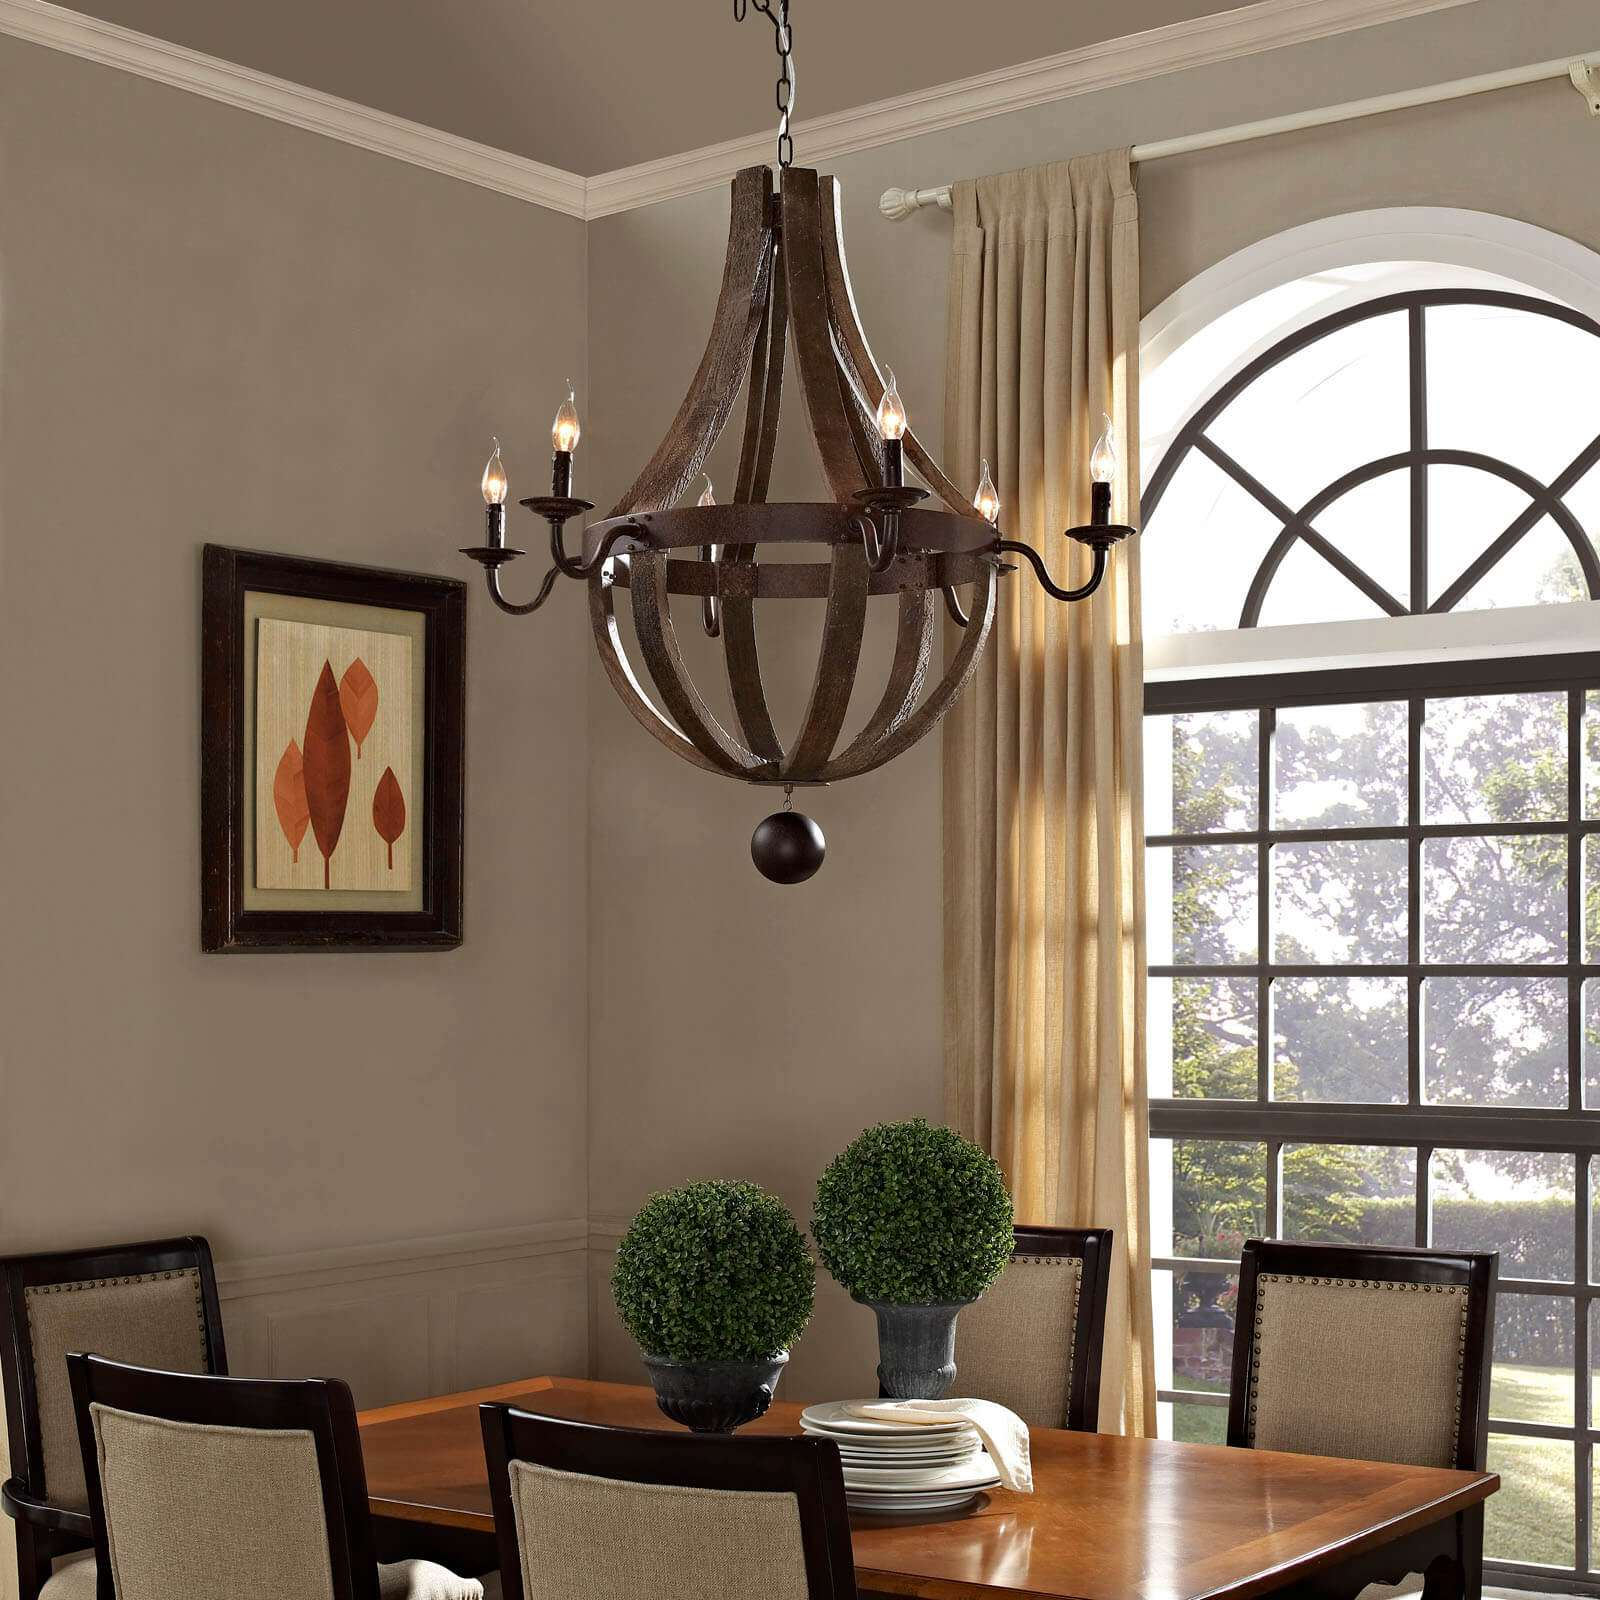 Vintage ceiling light fixtures environmental view